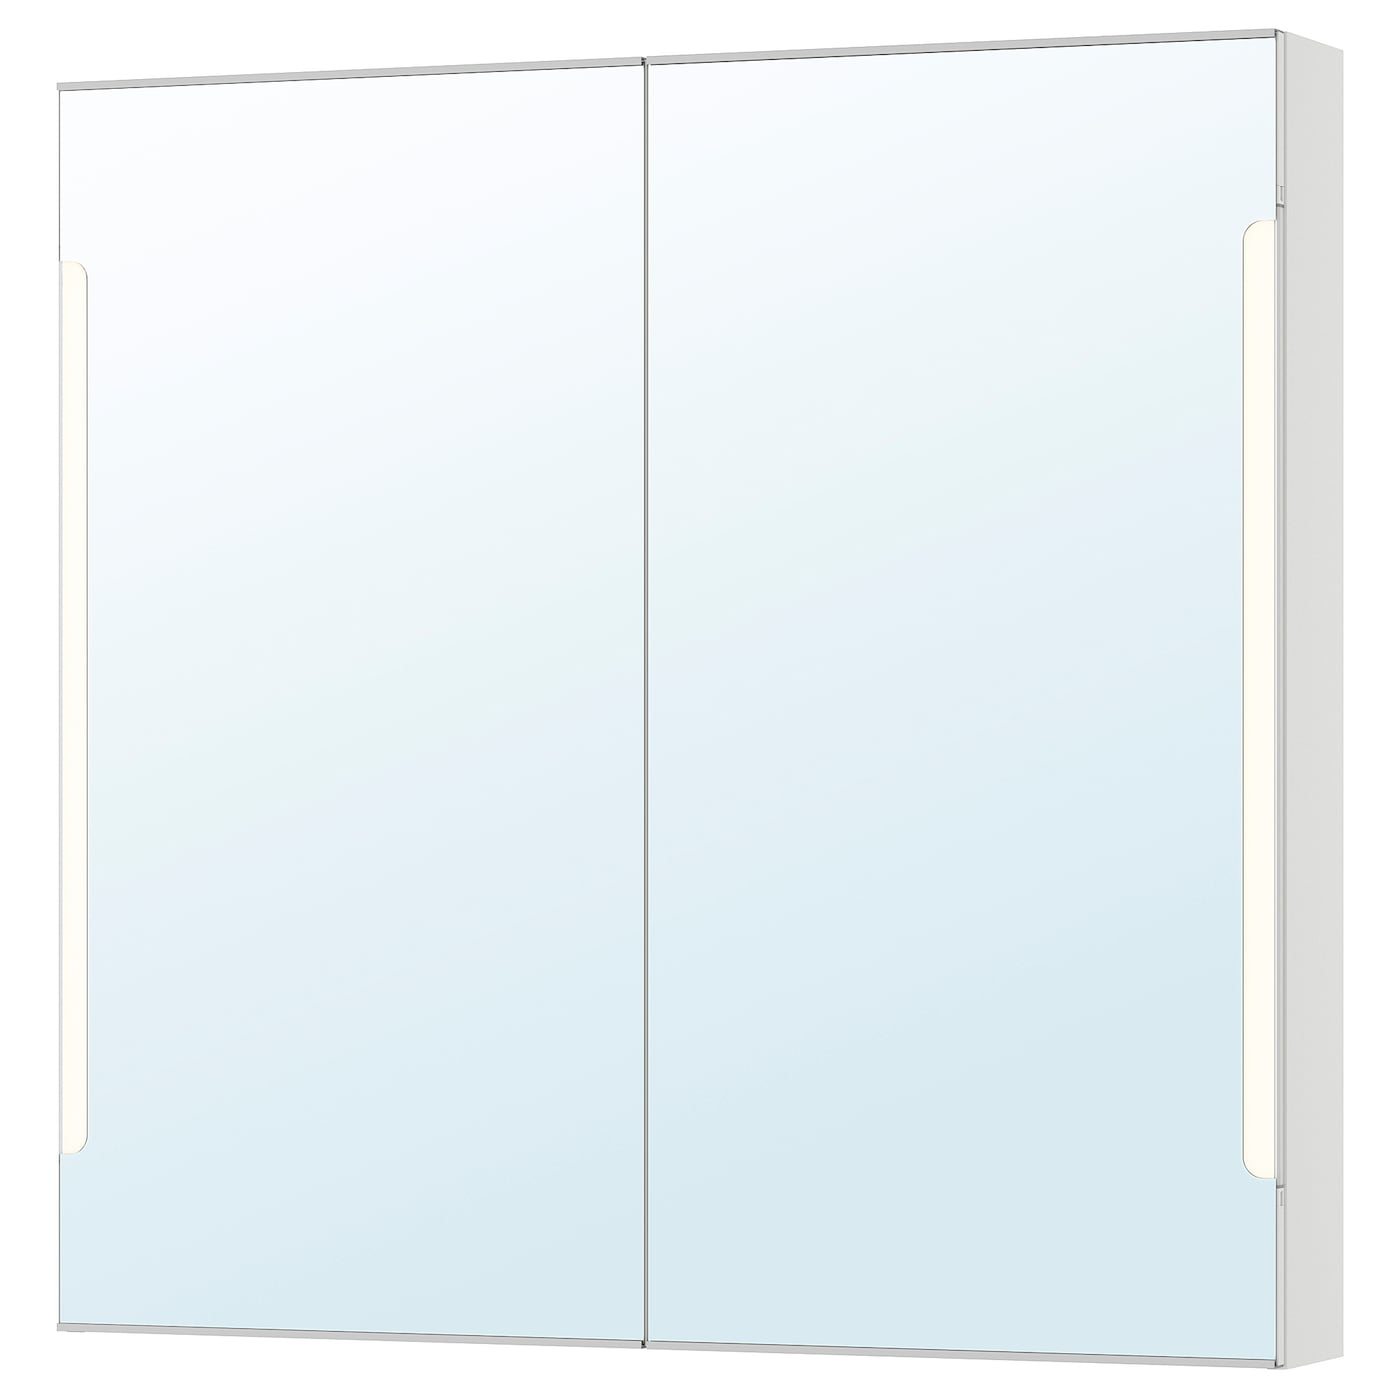 Storjorm Mirror Cabinet W 2 Doors Light White 39 3 8x5 1 2x37 3 4 Ikea